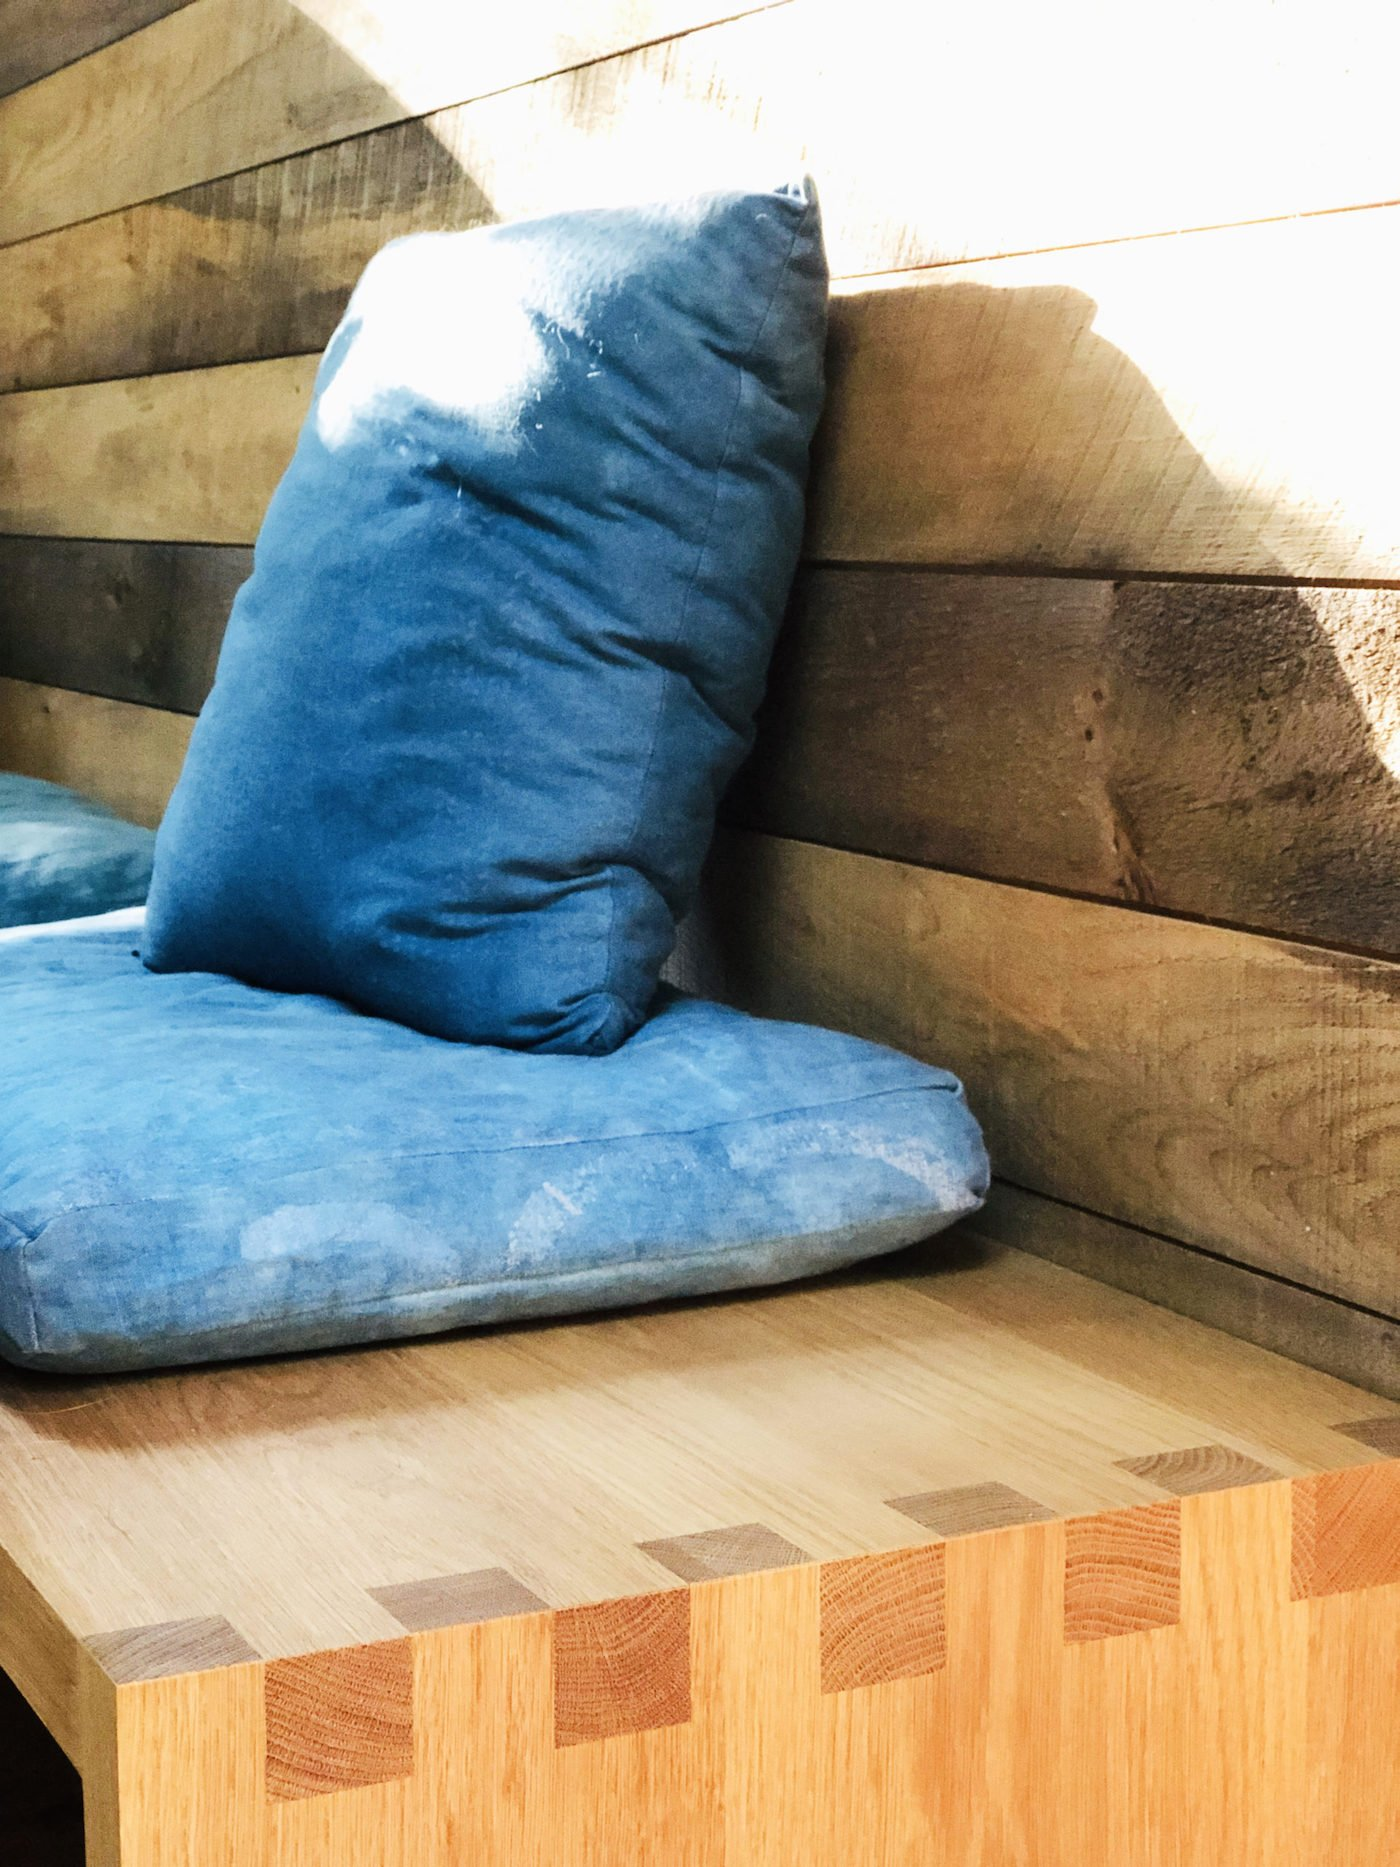 Detail of timber bench seat with blue cushions